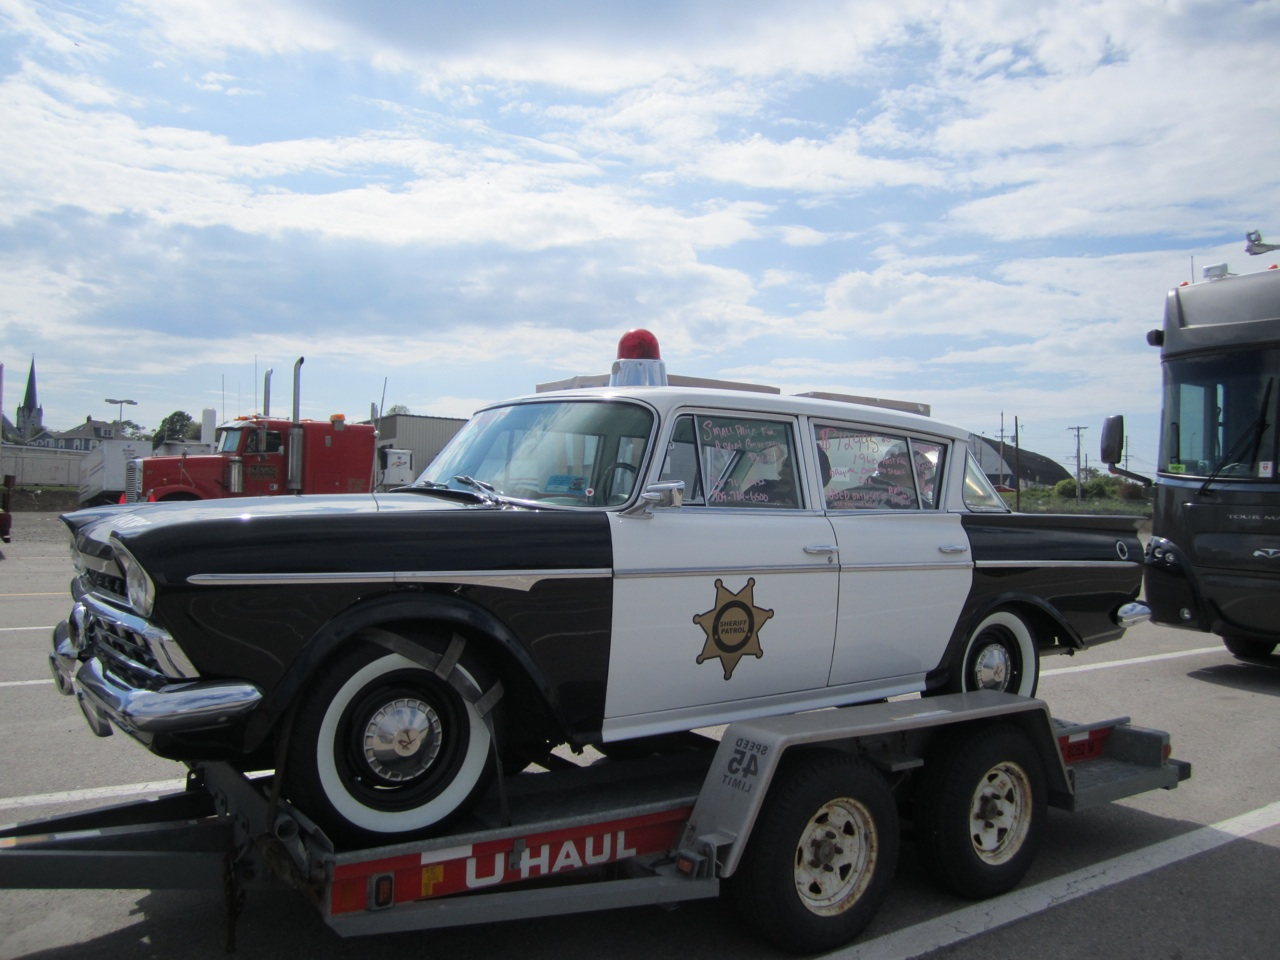 A cool Sheriff's car from the Andy Griffiths show on a trailer.